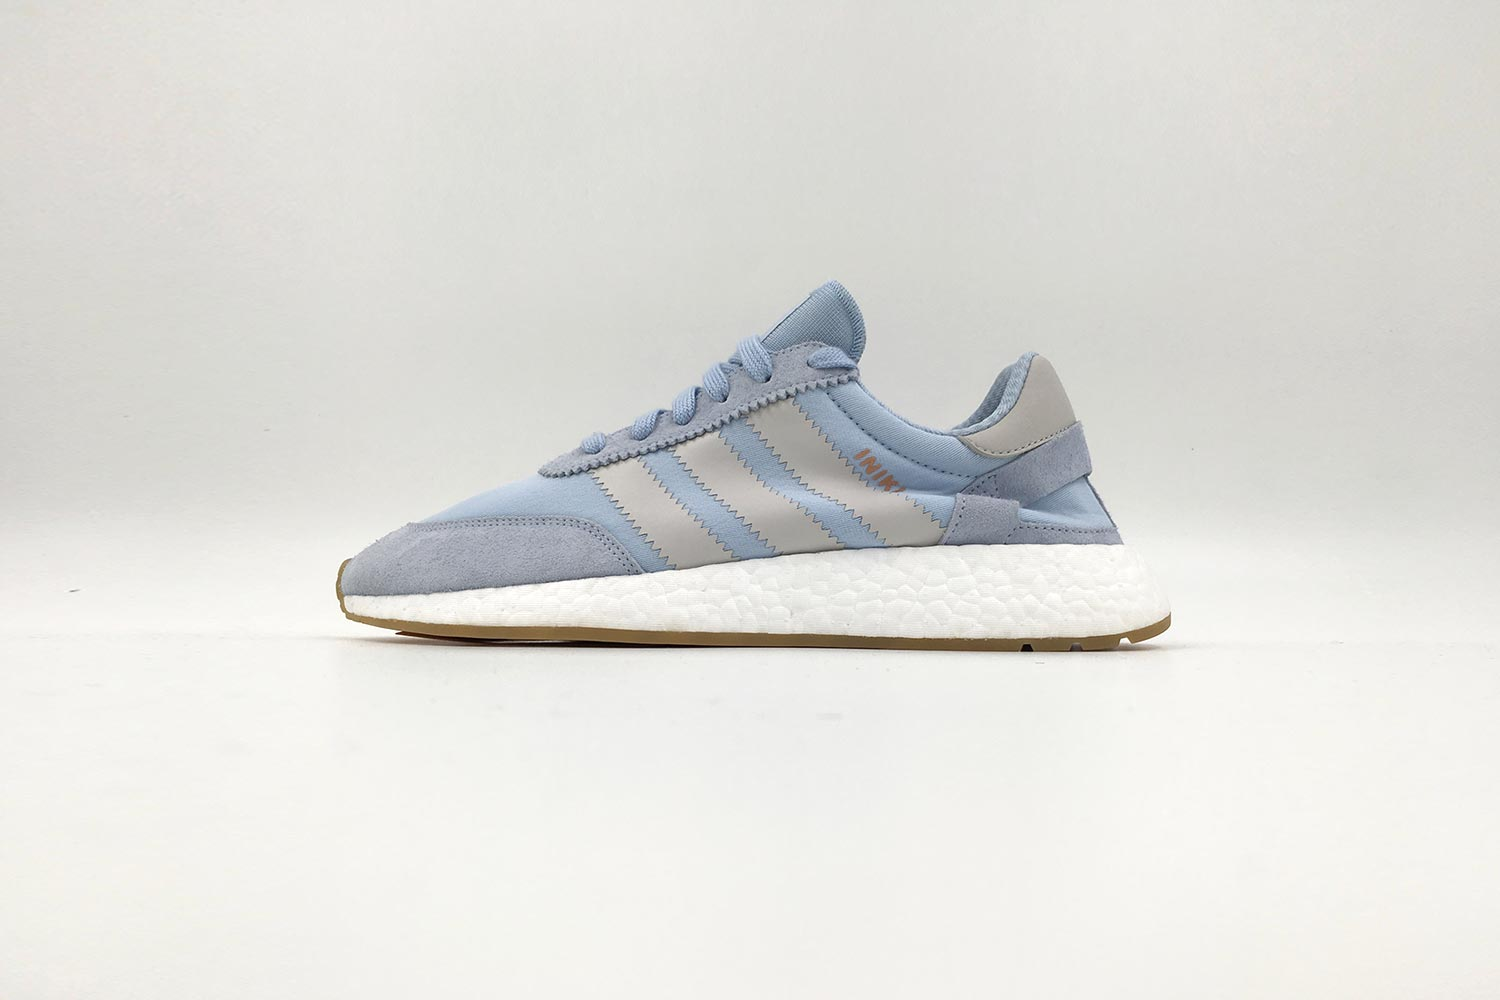 90d7cfdf5aaa Two New Colorways of the adidas Originals Iniki